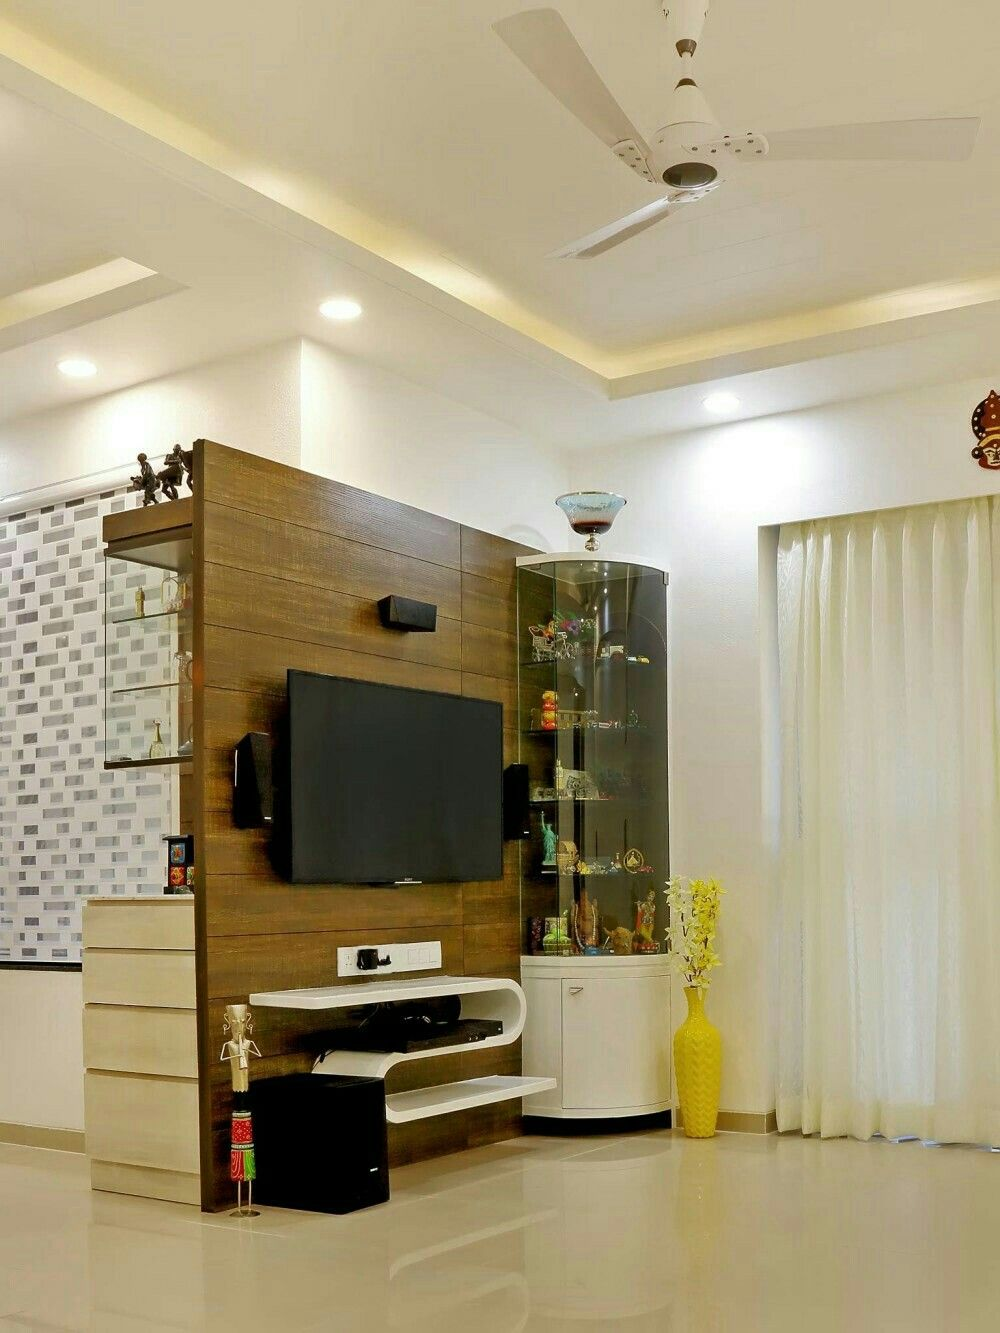 Tv Unit In Living Room: Pin By Anita Gopalakrishnan On Good To Know